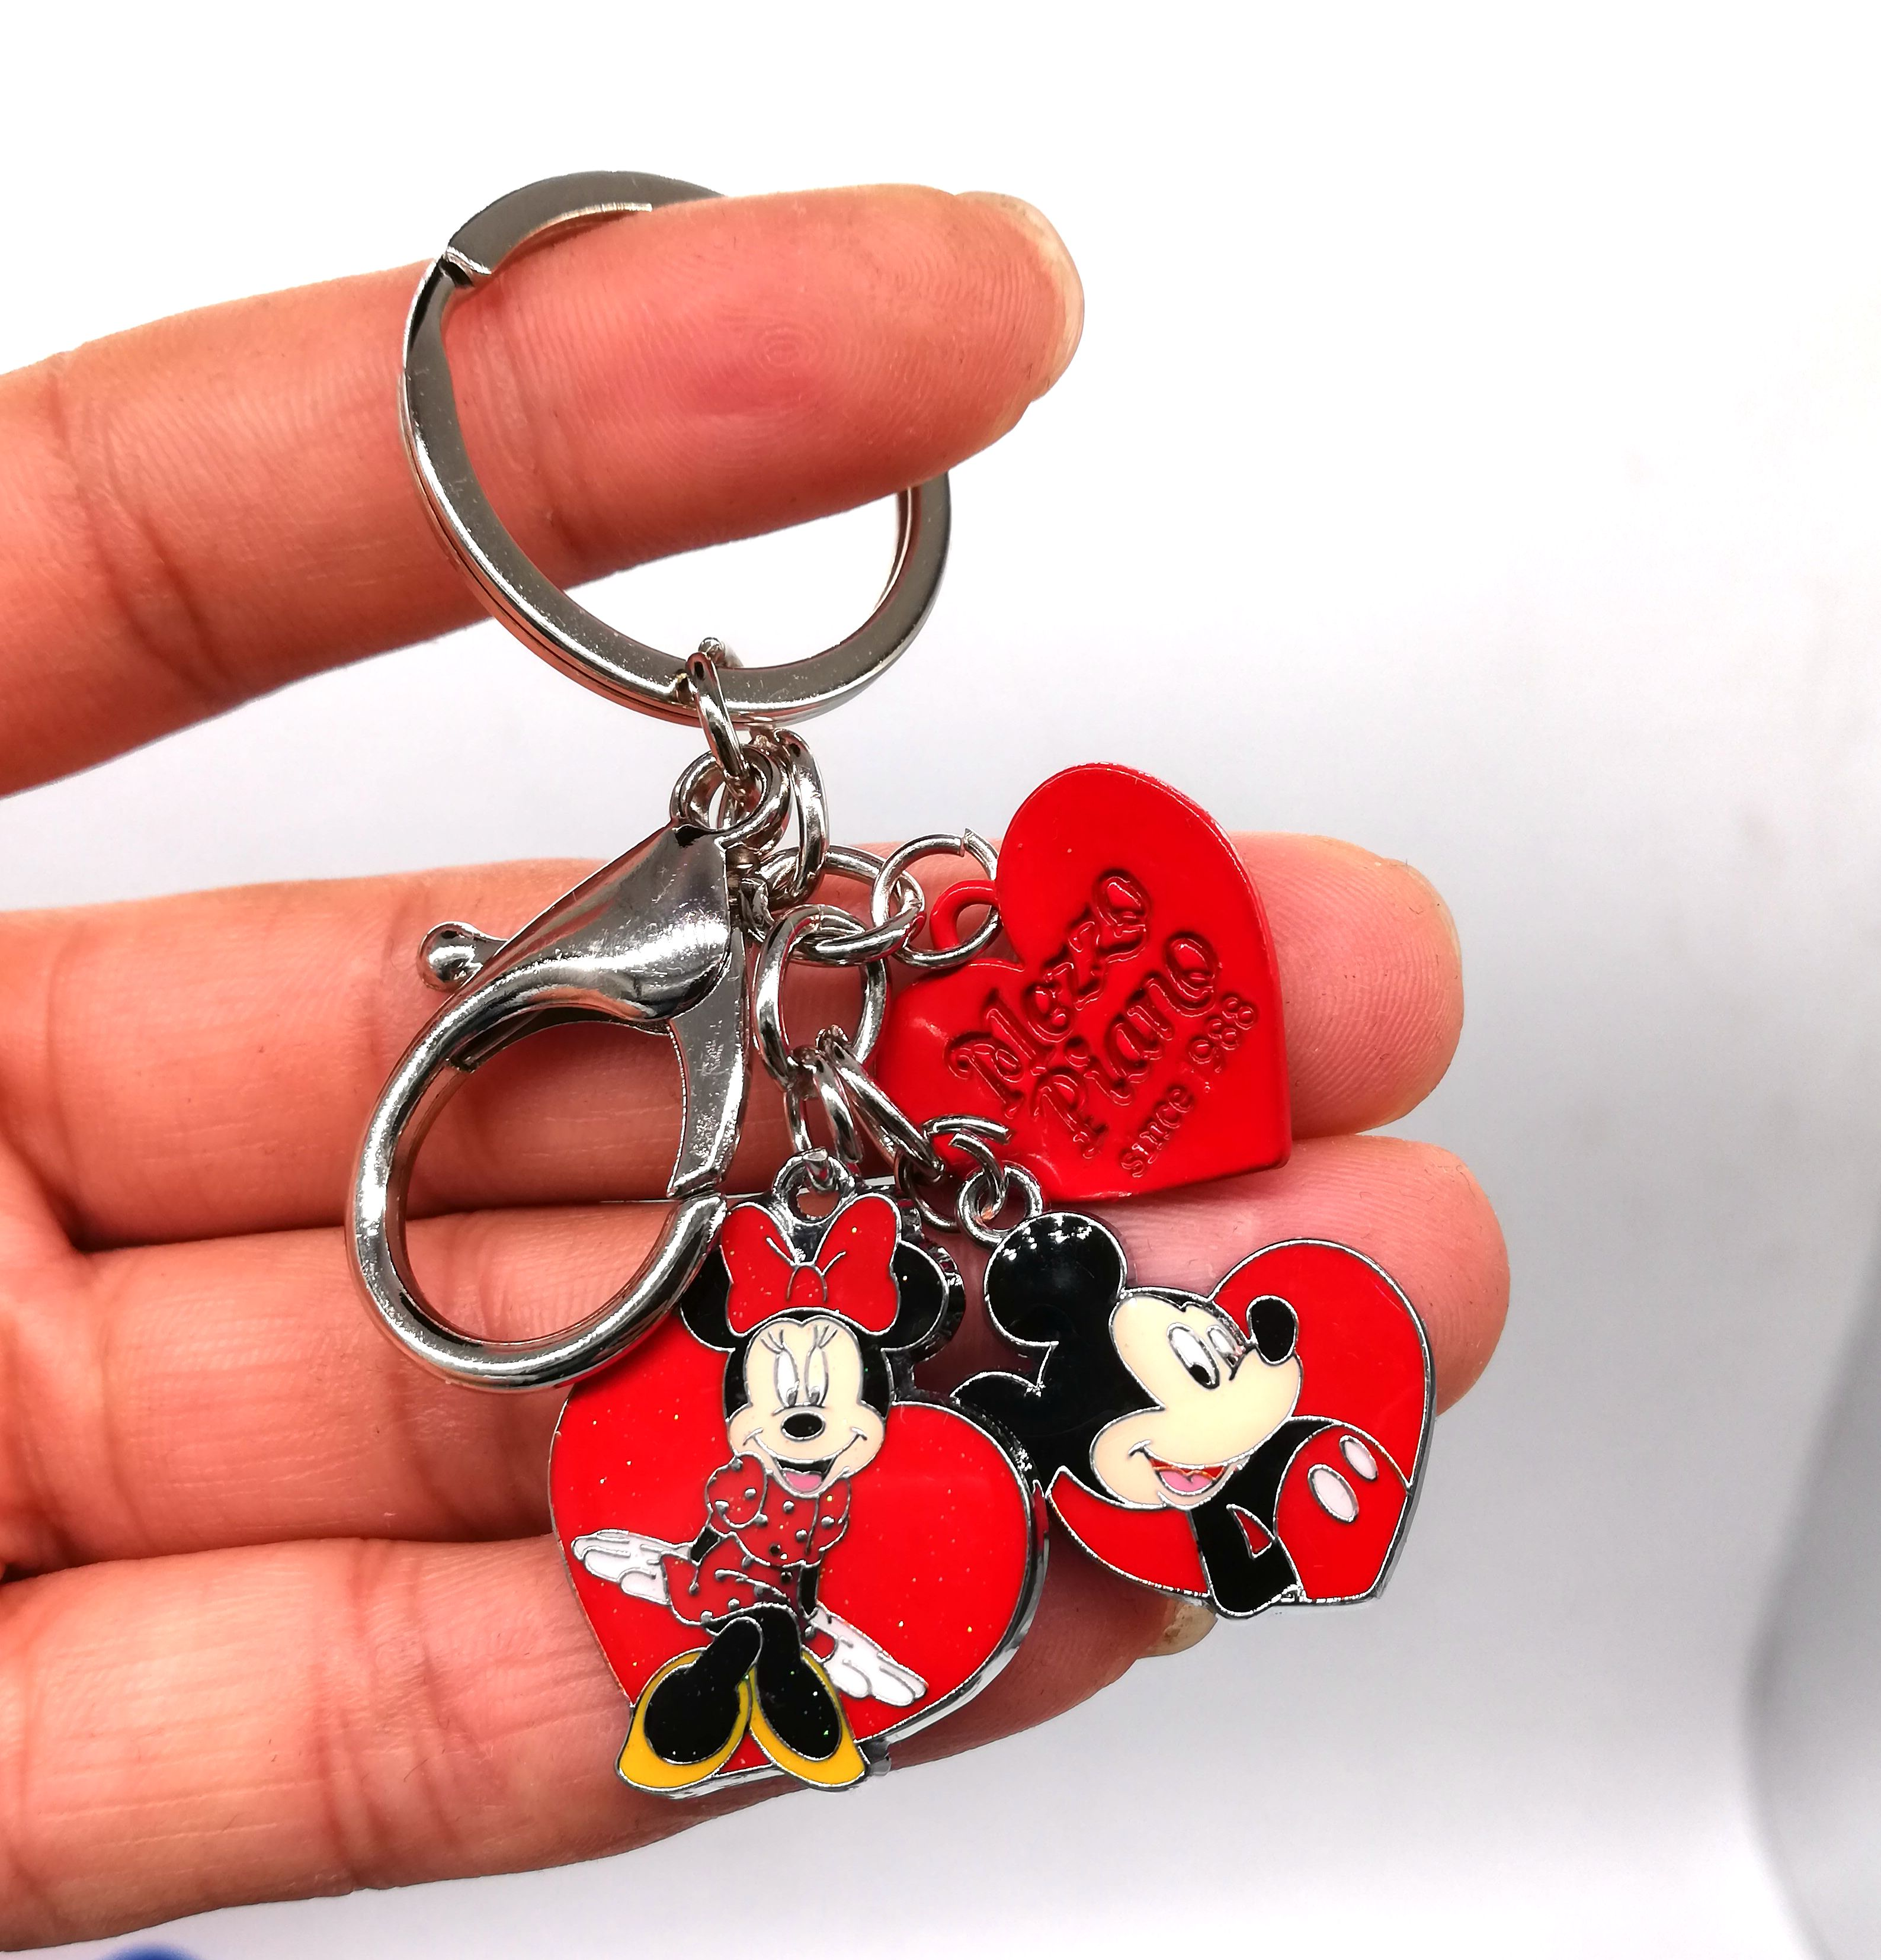 New 1 set Cartoon mickey minnie heart Keychain Jewelry Accessories Key Chains Pendant Gifts Favors LK-20 image